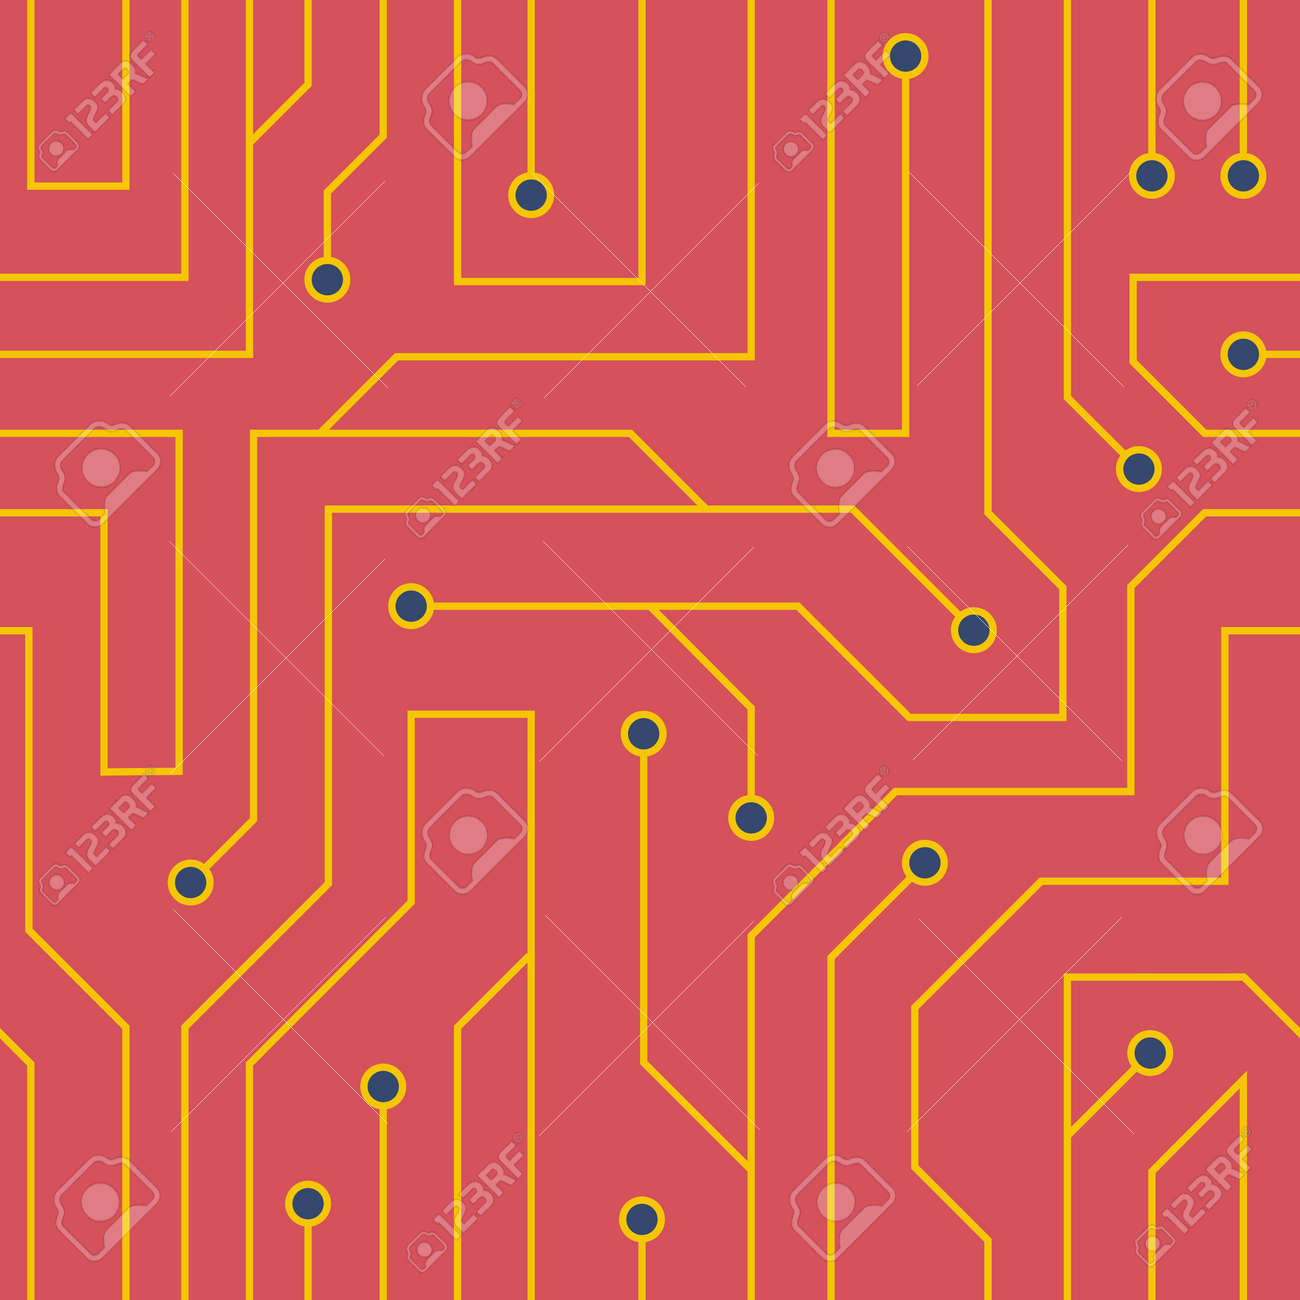 Flat Style Red Circuit Board Background. Electrical Scheme Seamless ...